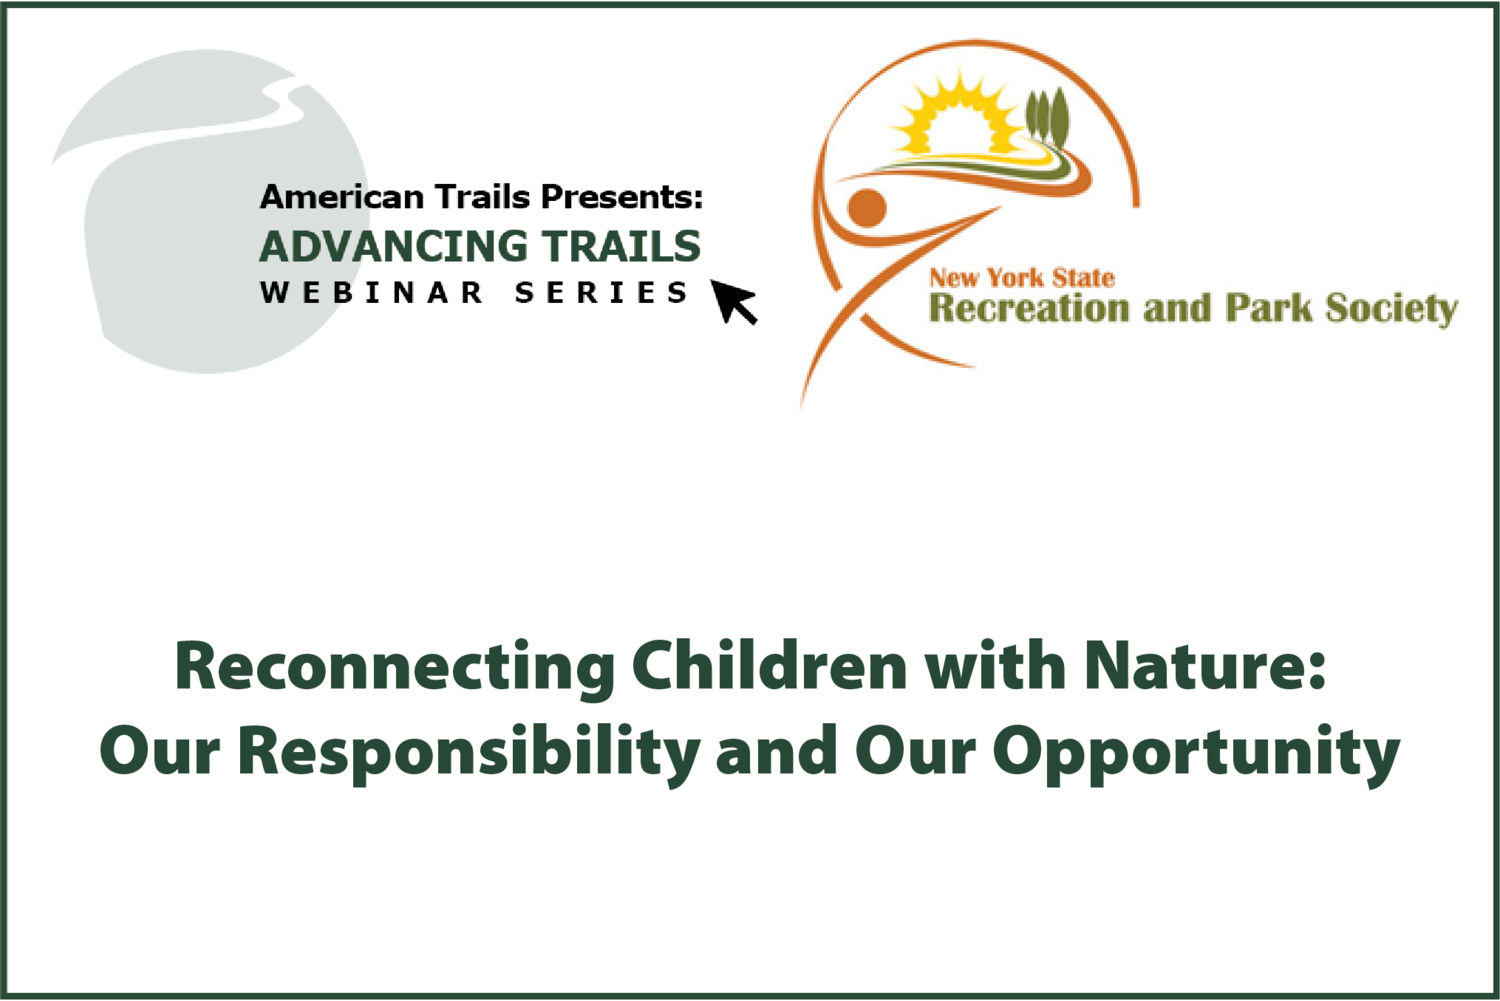 Reconnecting Children with Nature: Our Responsibility and Our Opportunity (OCTOBER 08, 2020)